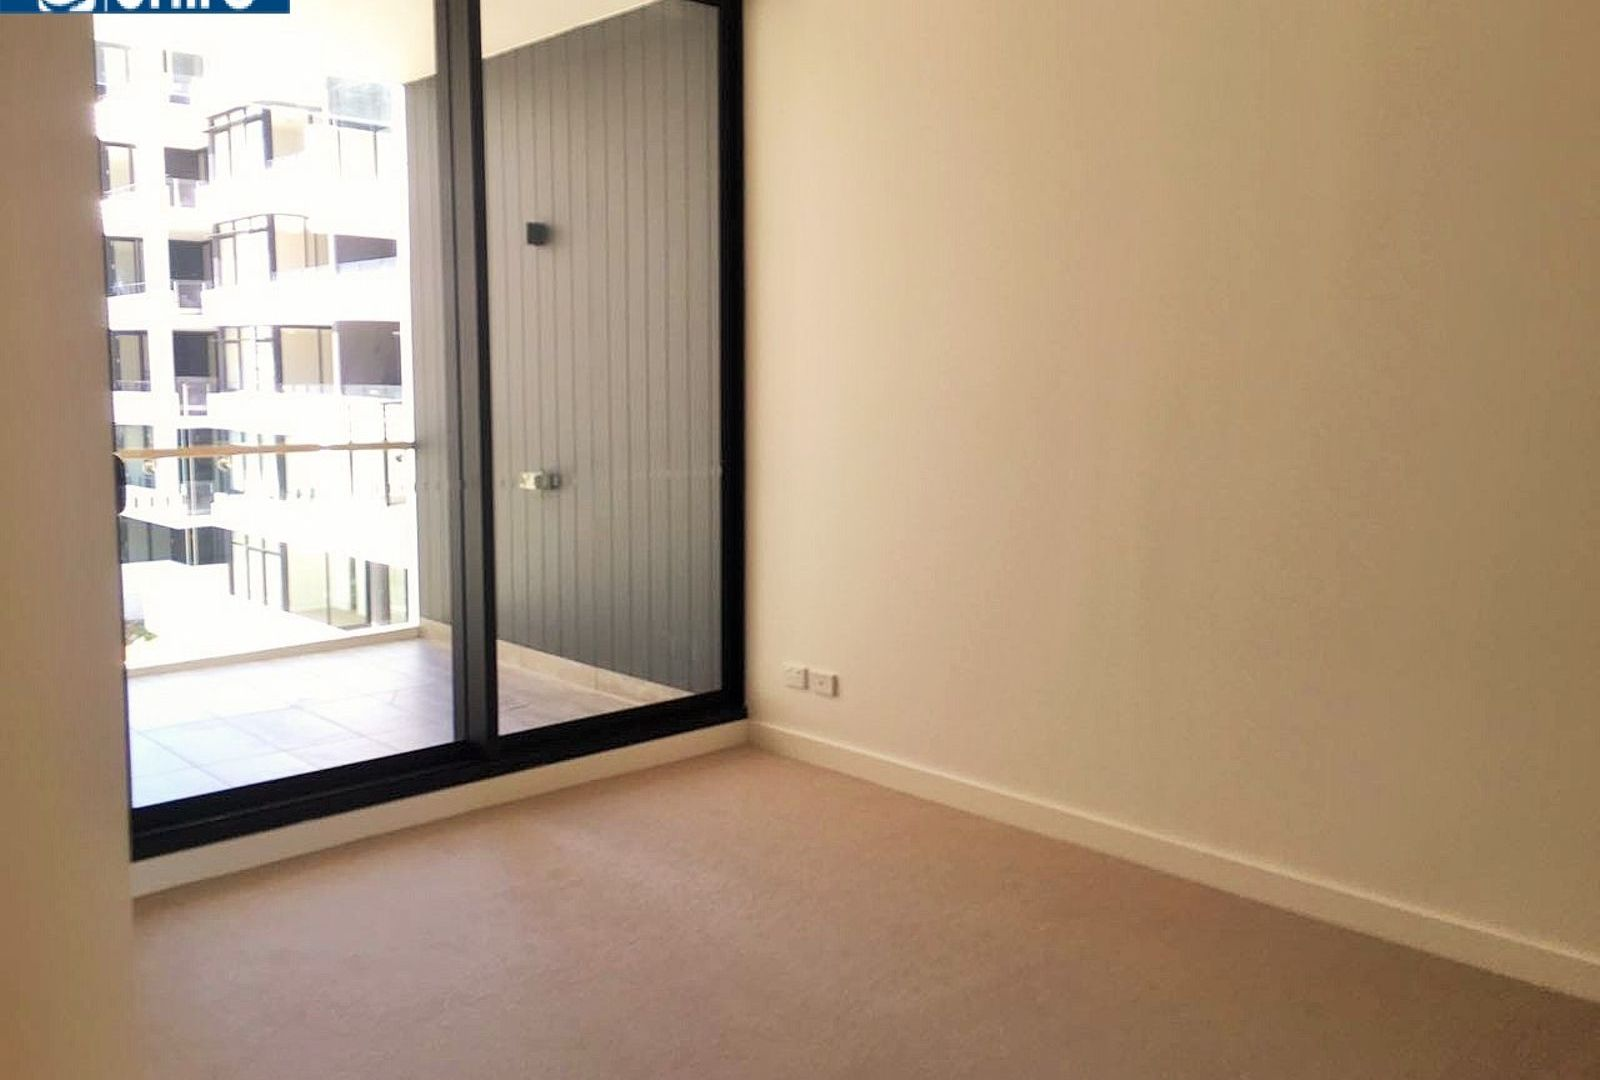 312a/461 2 Dune Walk, Captain Cook Drive, Woolooware NSW 2230, Image 2